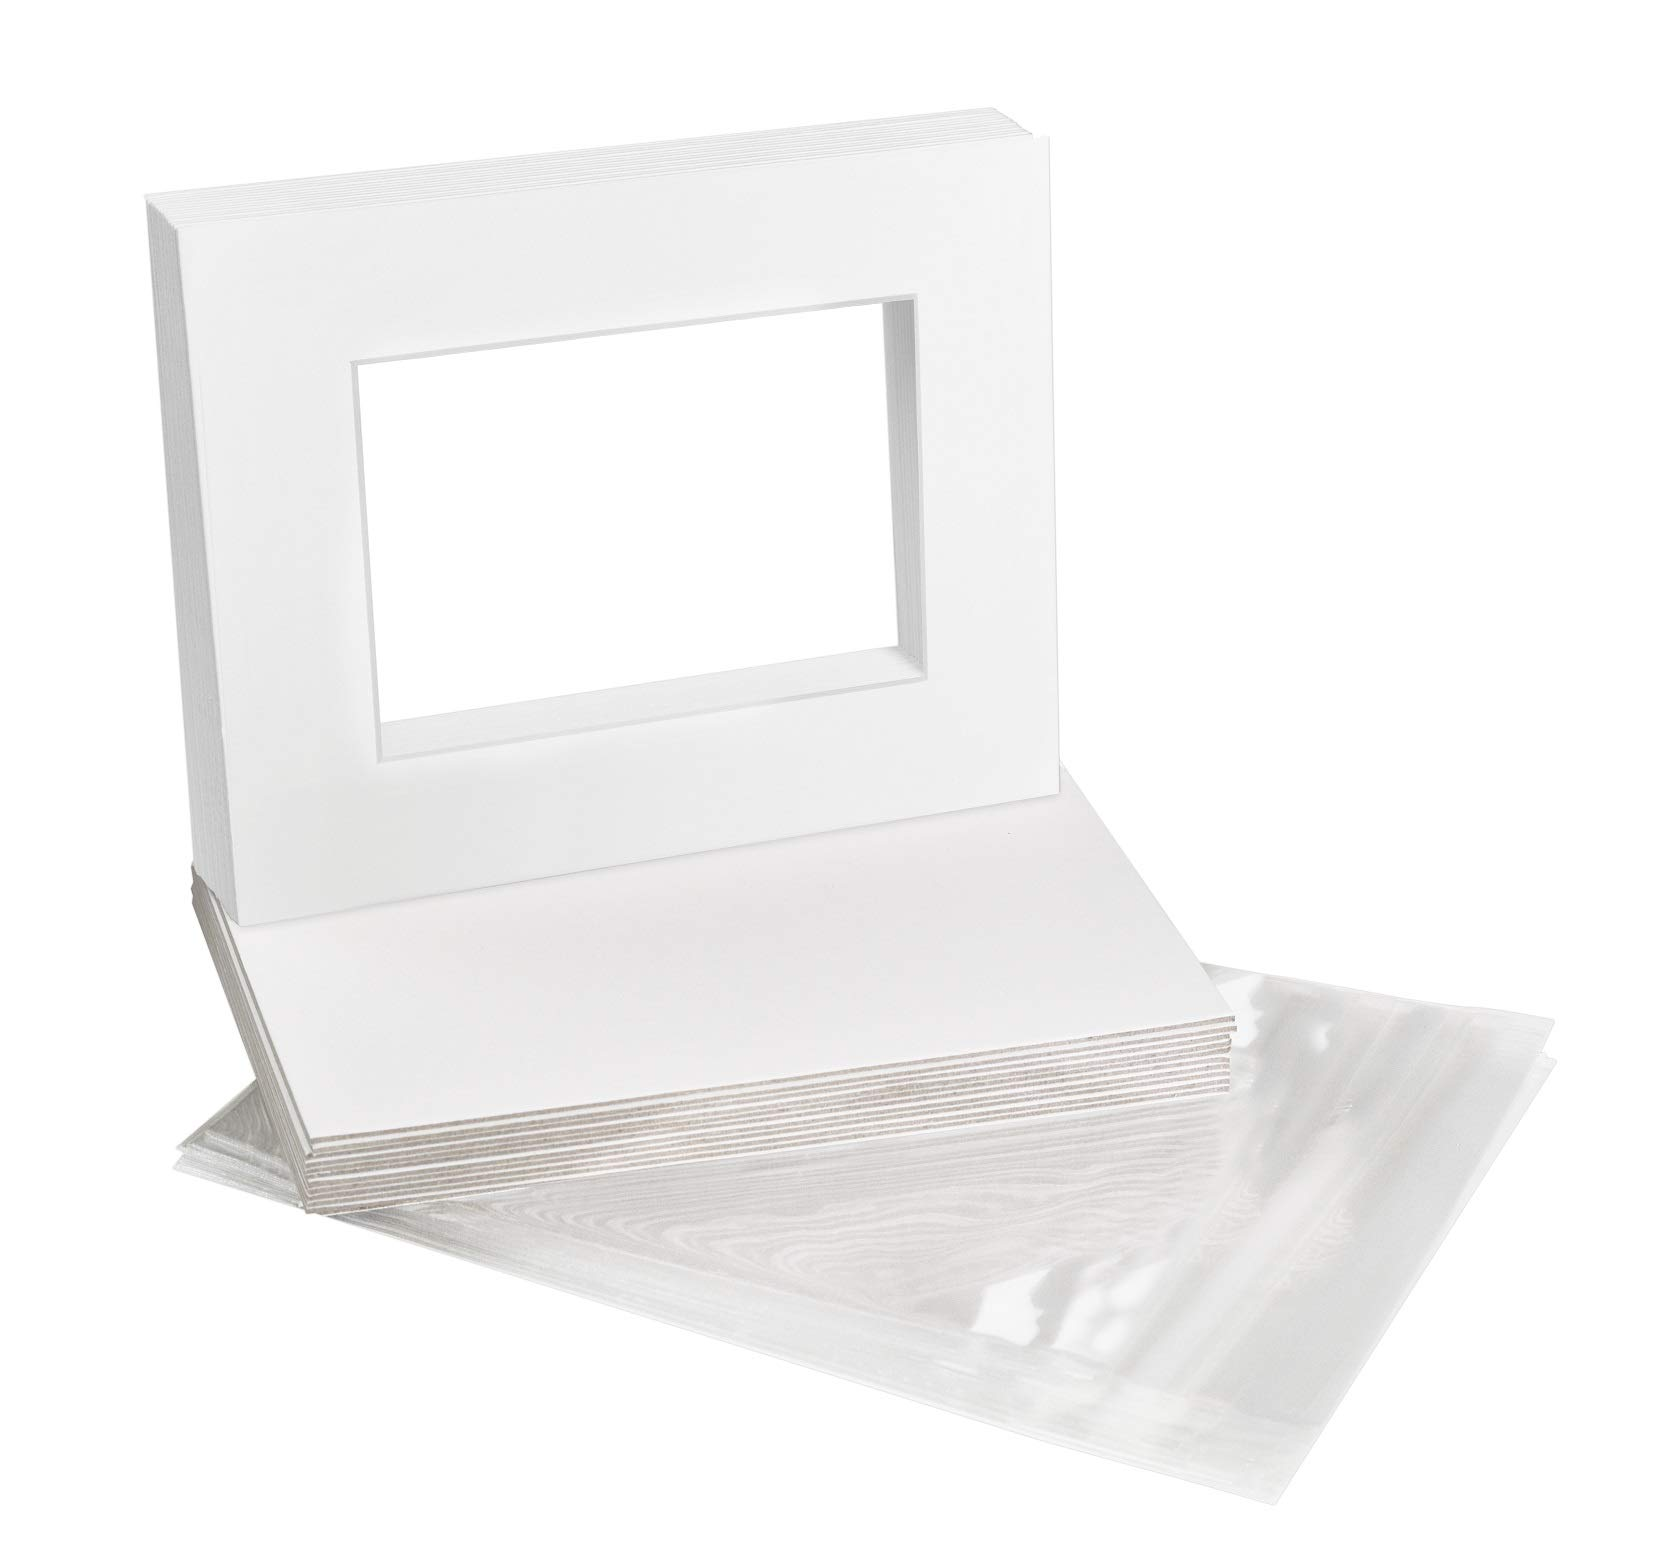 Golden State Art, Acid-Free Pre-Cut 8x10 White Picture Mat Sets. Includes Pack of 10 White Core Bevel Cut Mats for 5x7 Photos, 10 Backing Boards and 10 Crystal Clear Plastic Sleeves Bags by Golden State Art